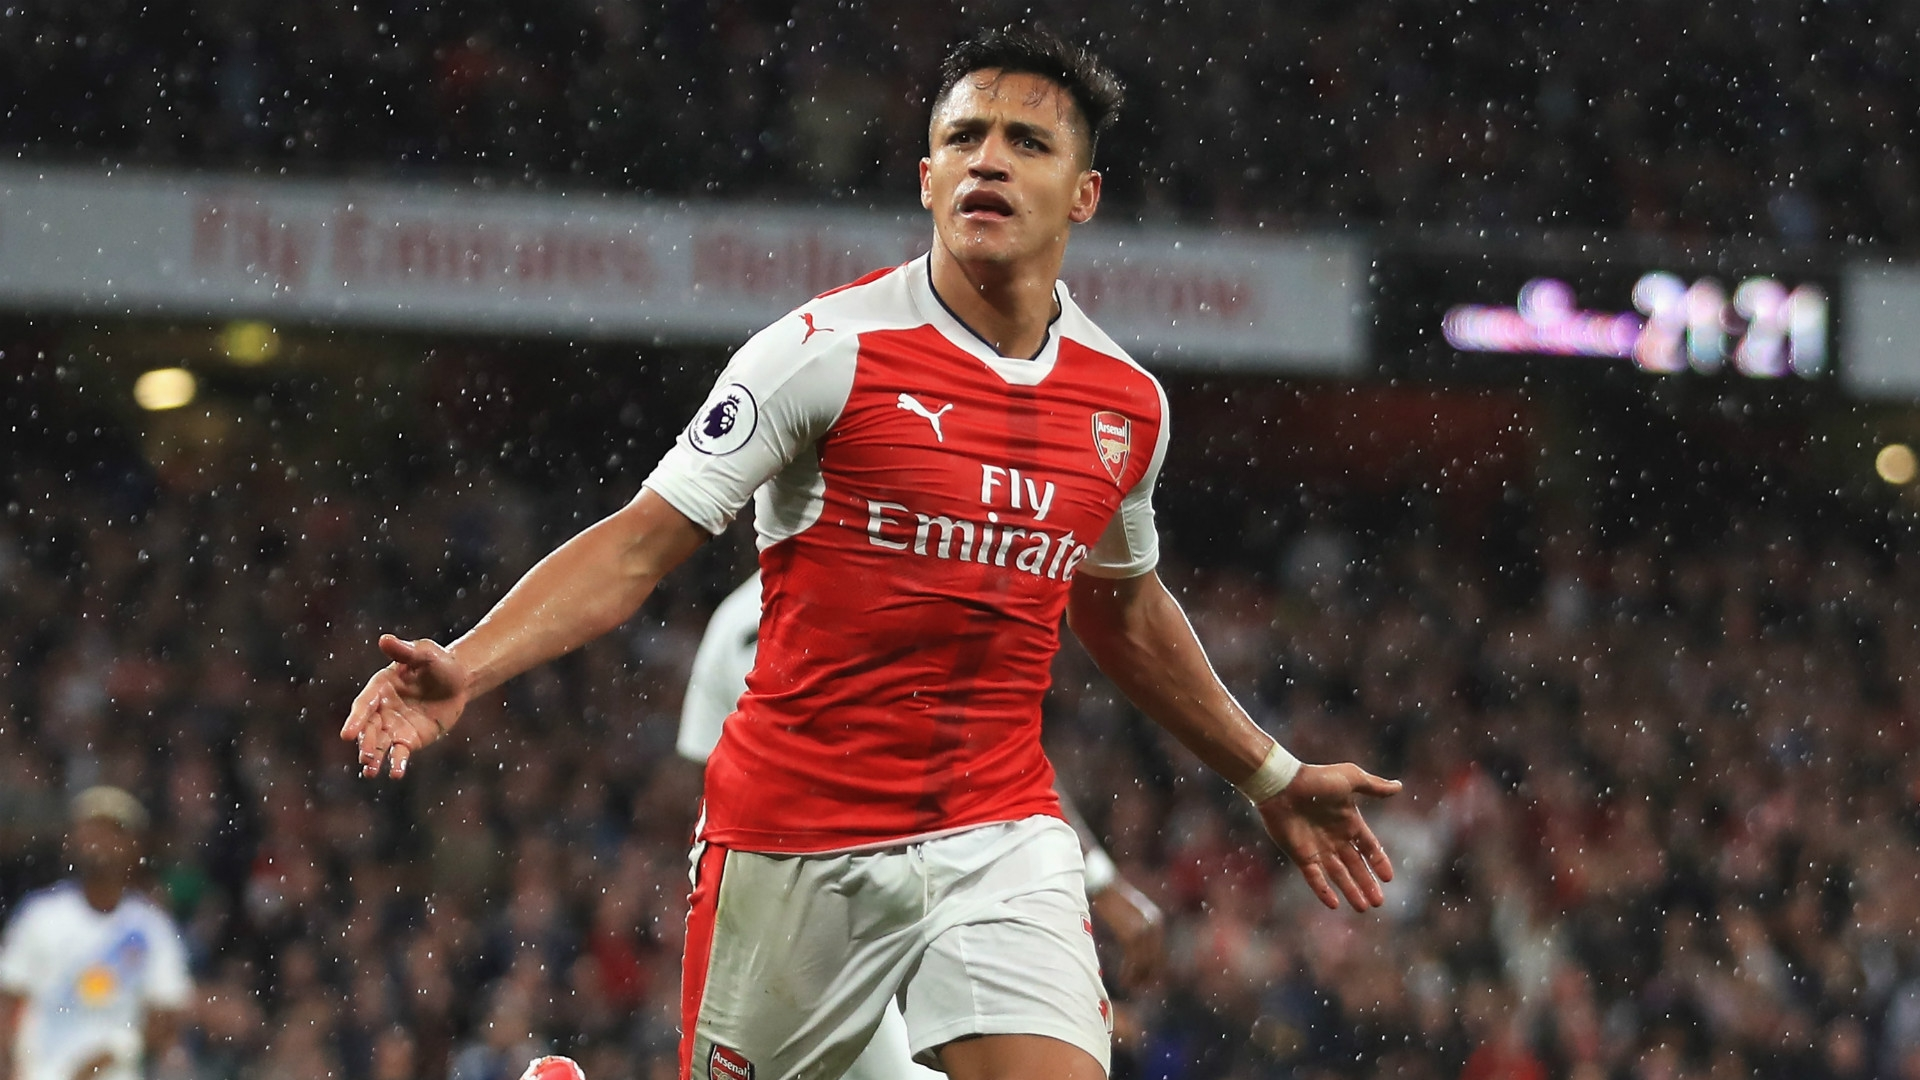 A move away from Arsenal seems more and more likely each day for Alexis Sanchez. Manager Wenger, however, continues to deny the rumours.